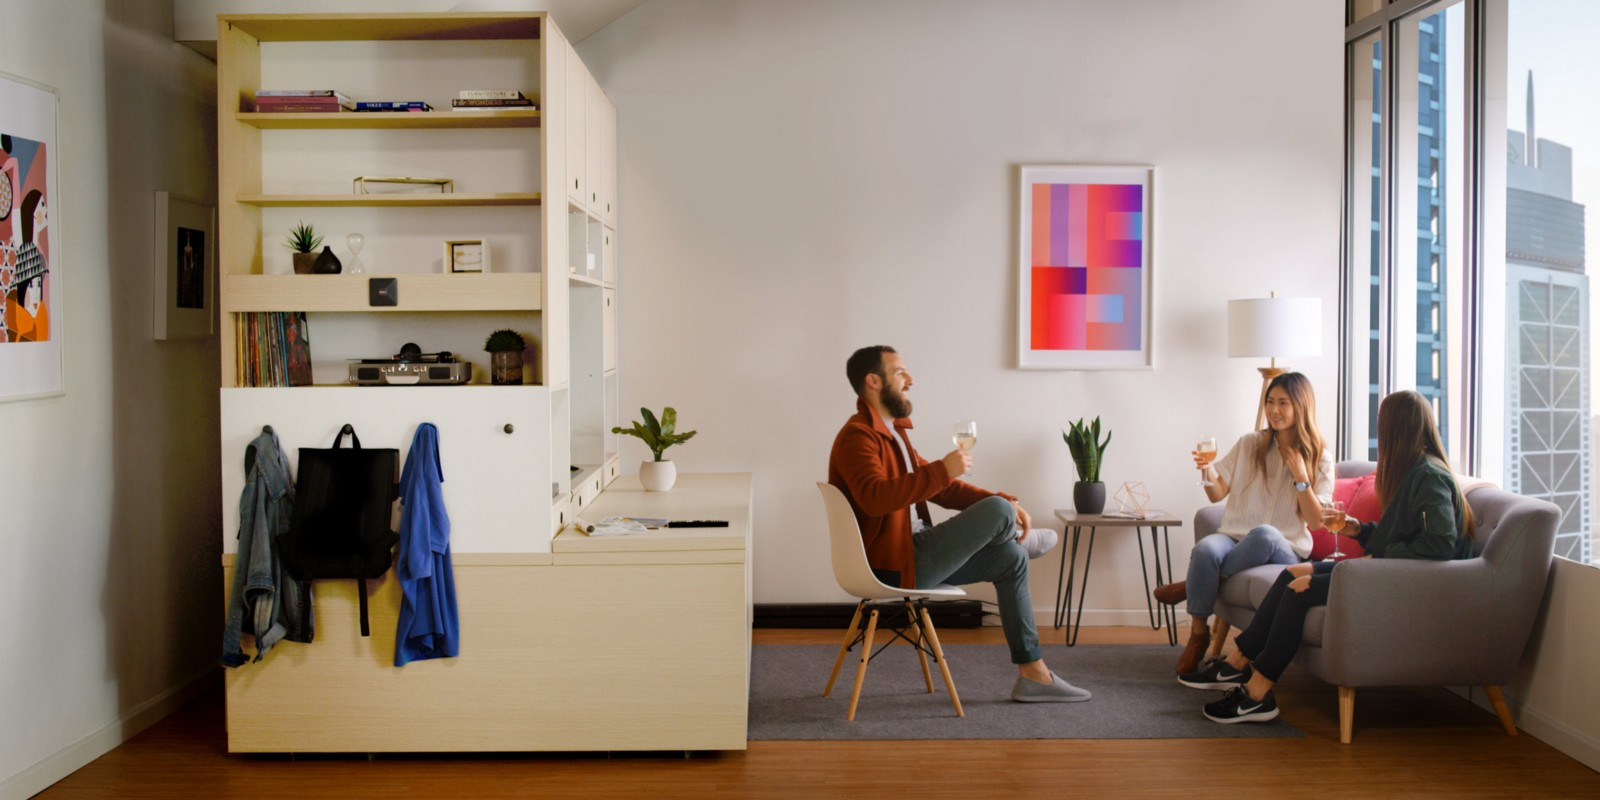 Ori Systems Robotic Furniture Transforms Your Apartment